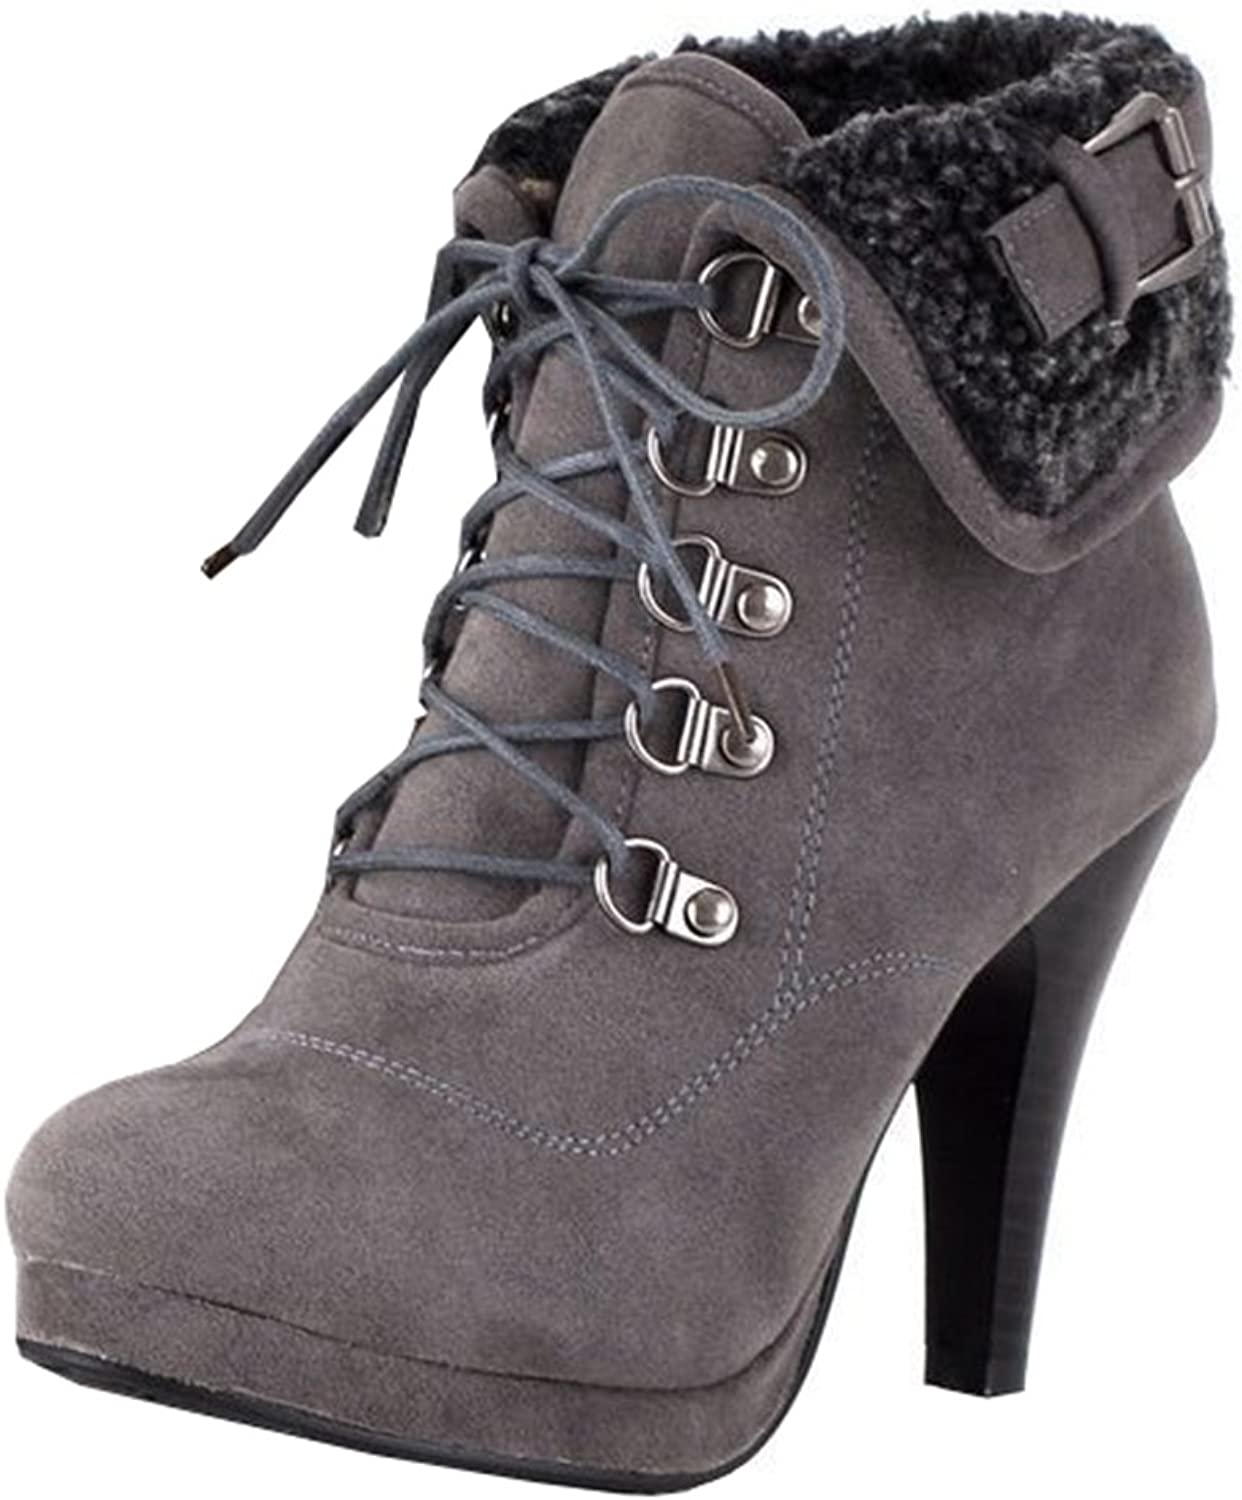 IDIFU Women's Vintage Folded Stiletto High Heels Fleece Lined Lace Up Ankle Martin Boots